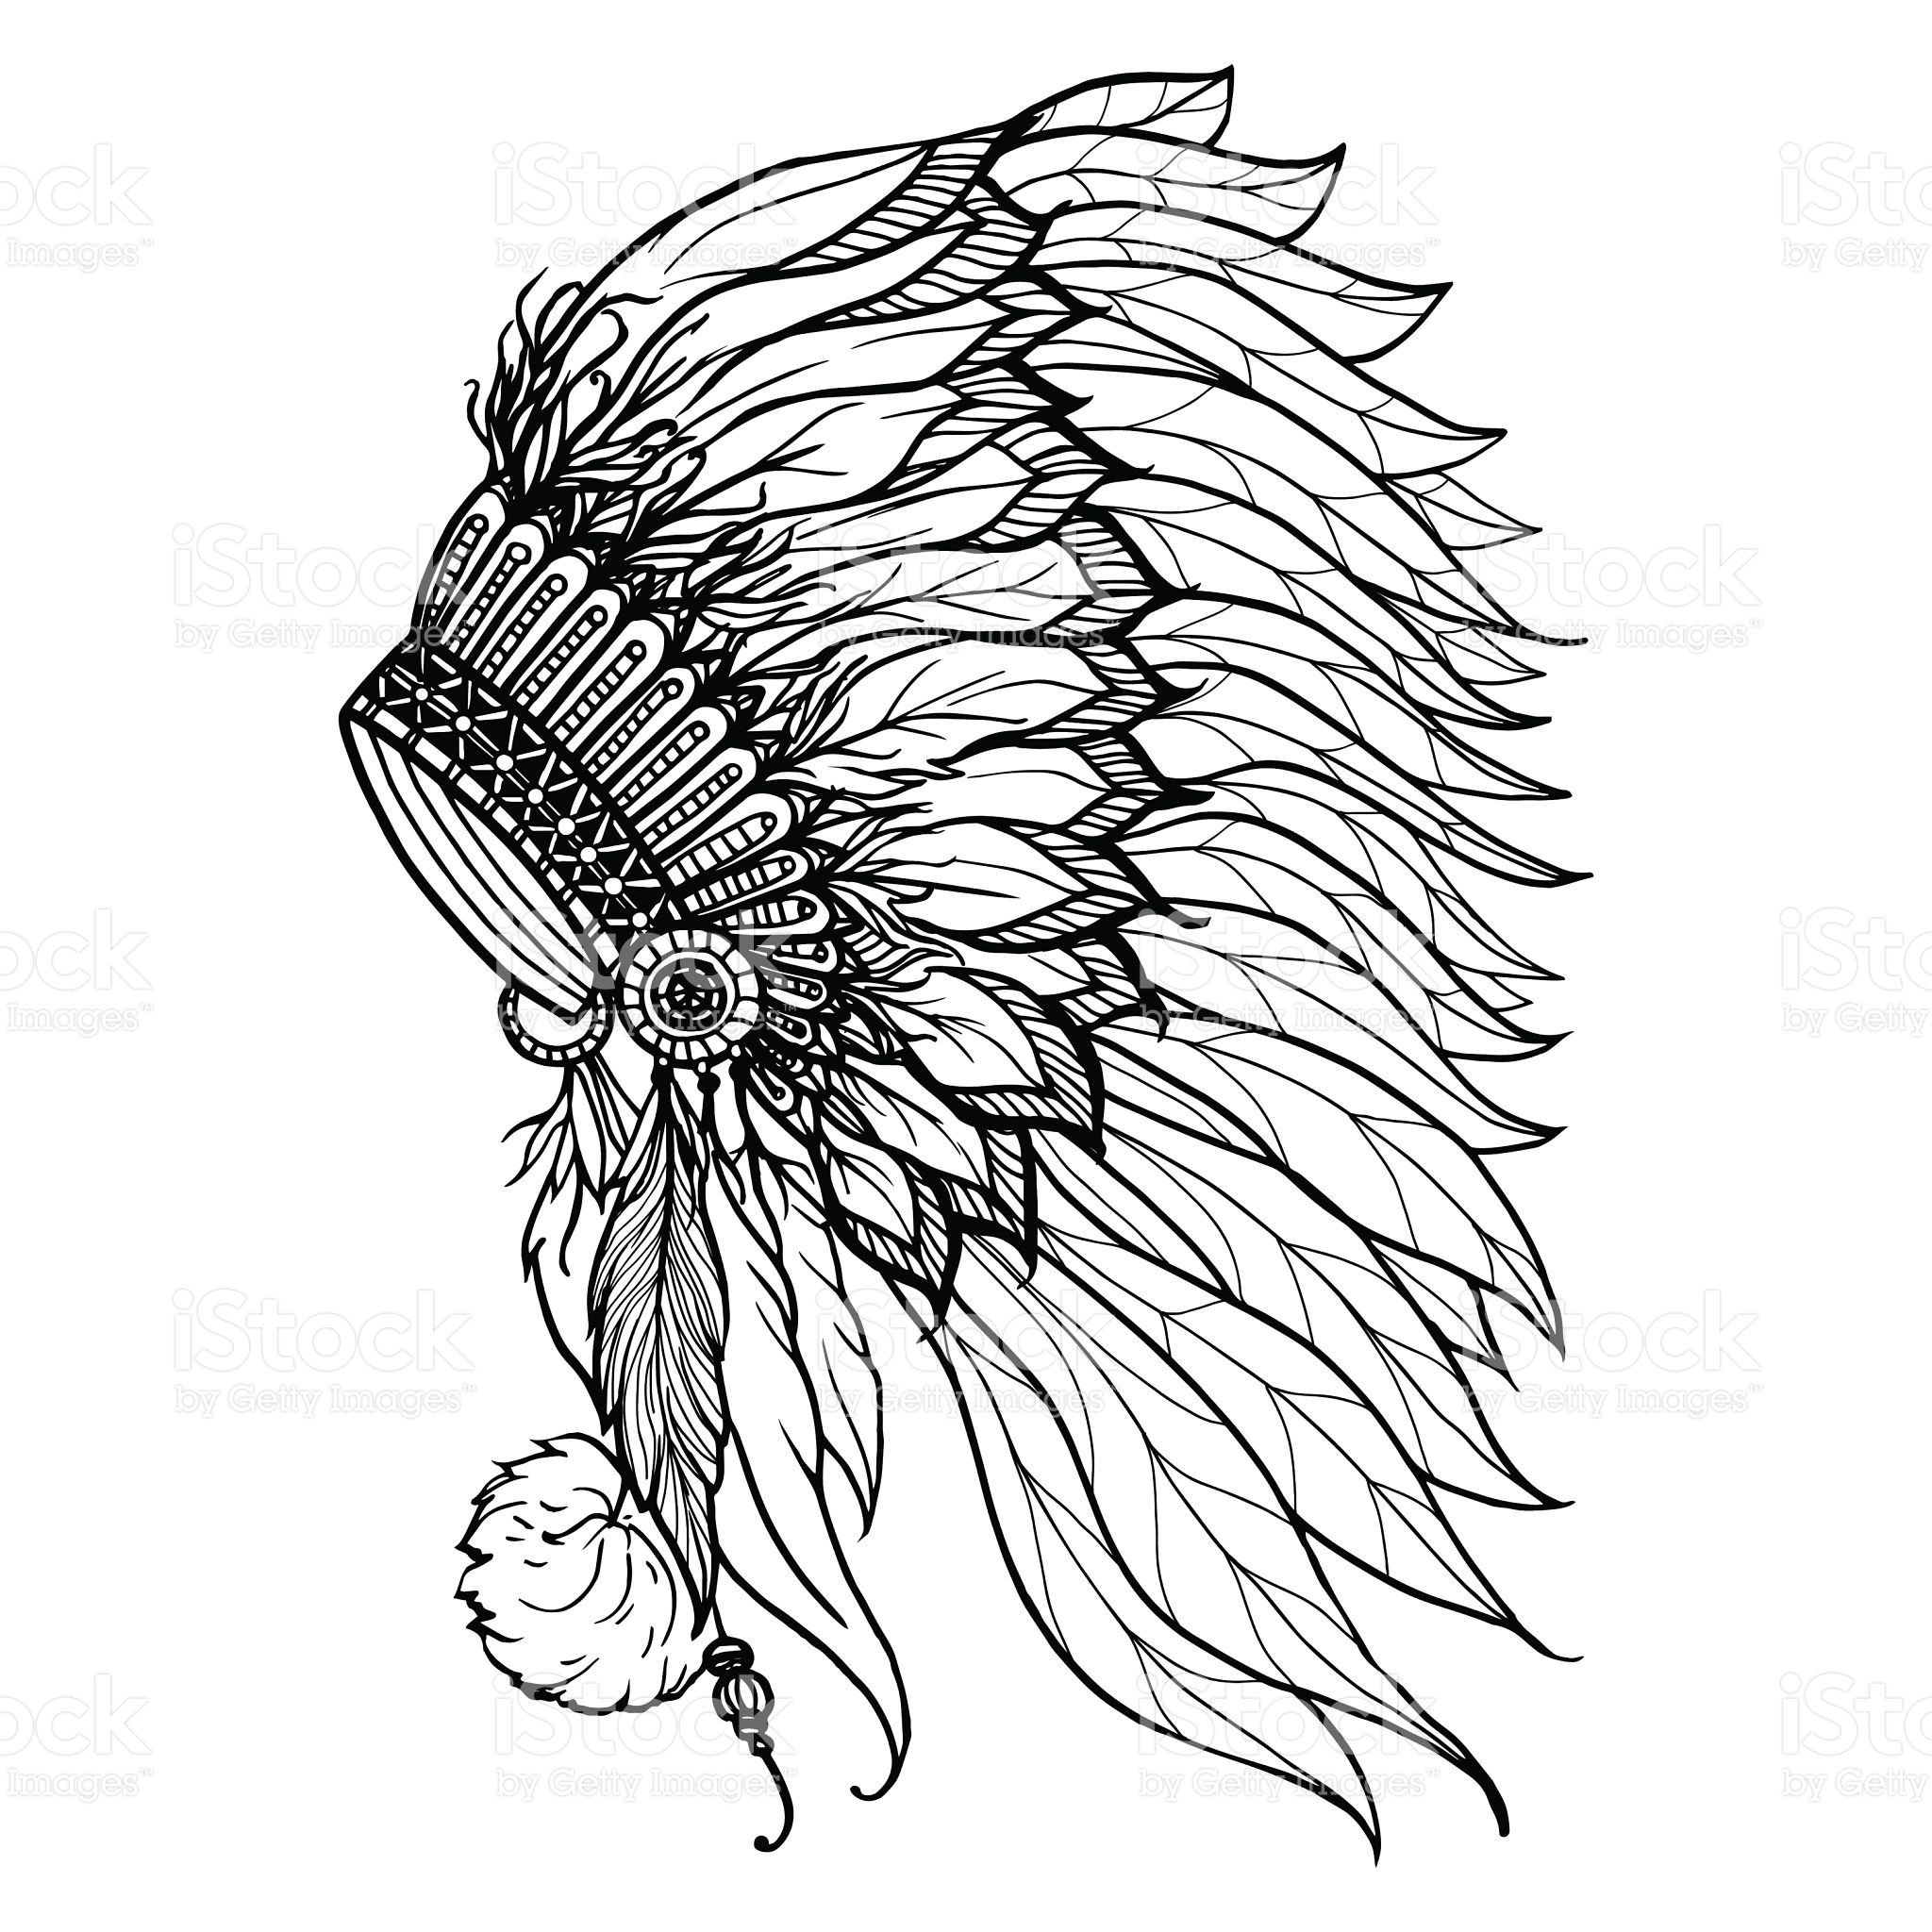 Doodle headdress for native american indian chief isolated on white ...